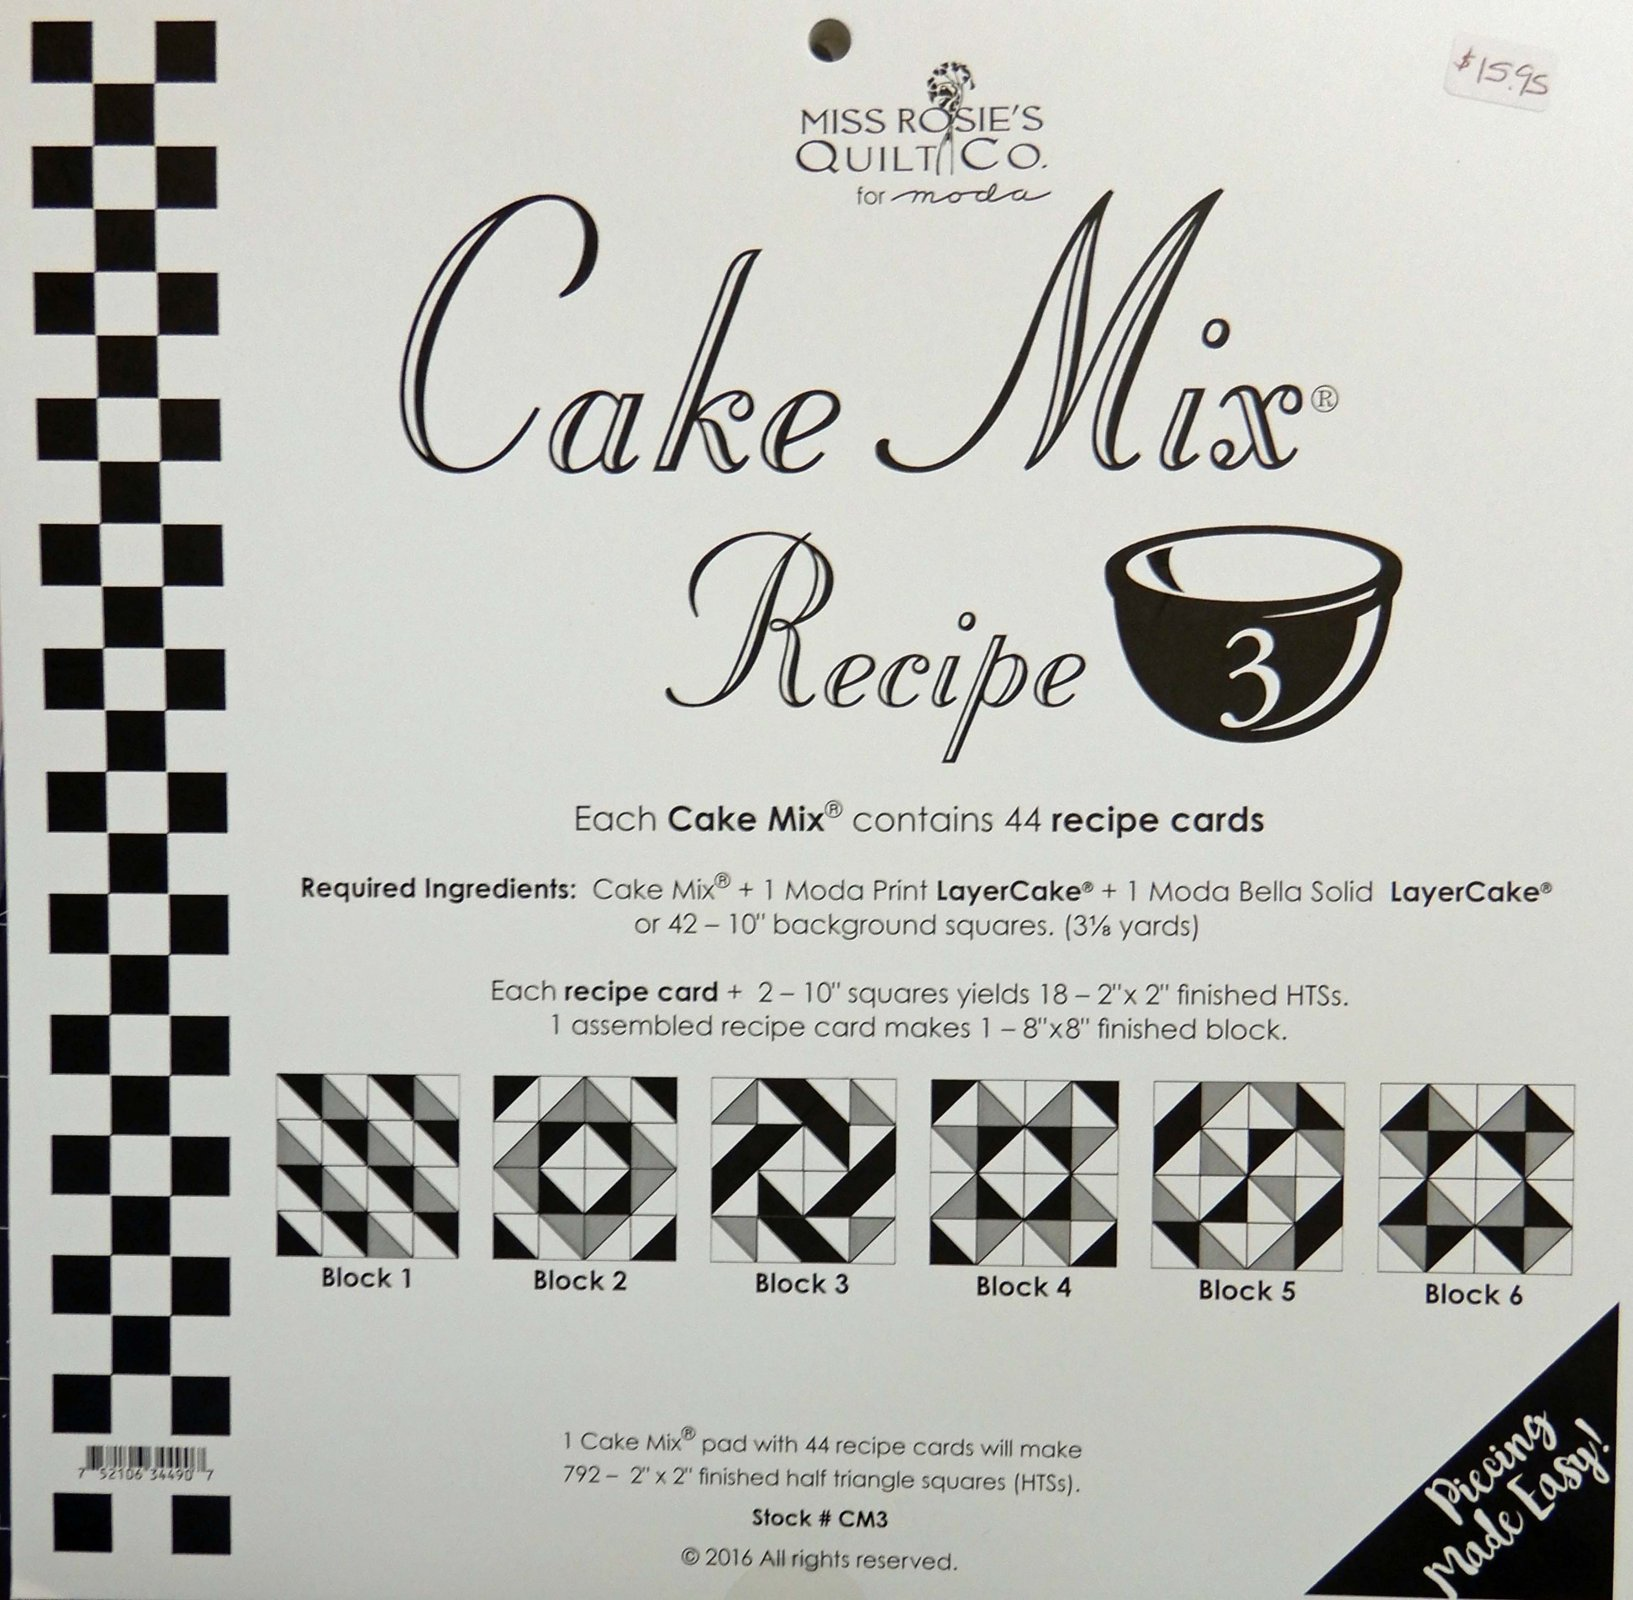 Cake Mix Recipe volume 3